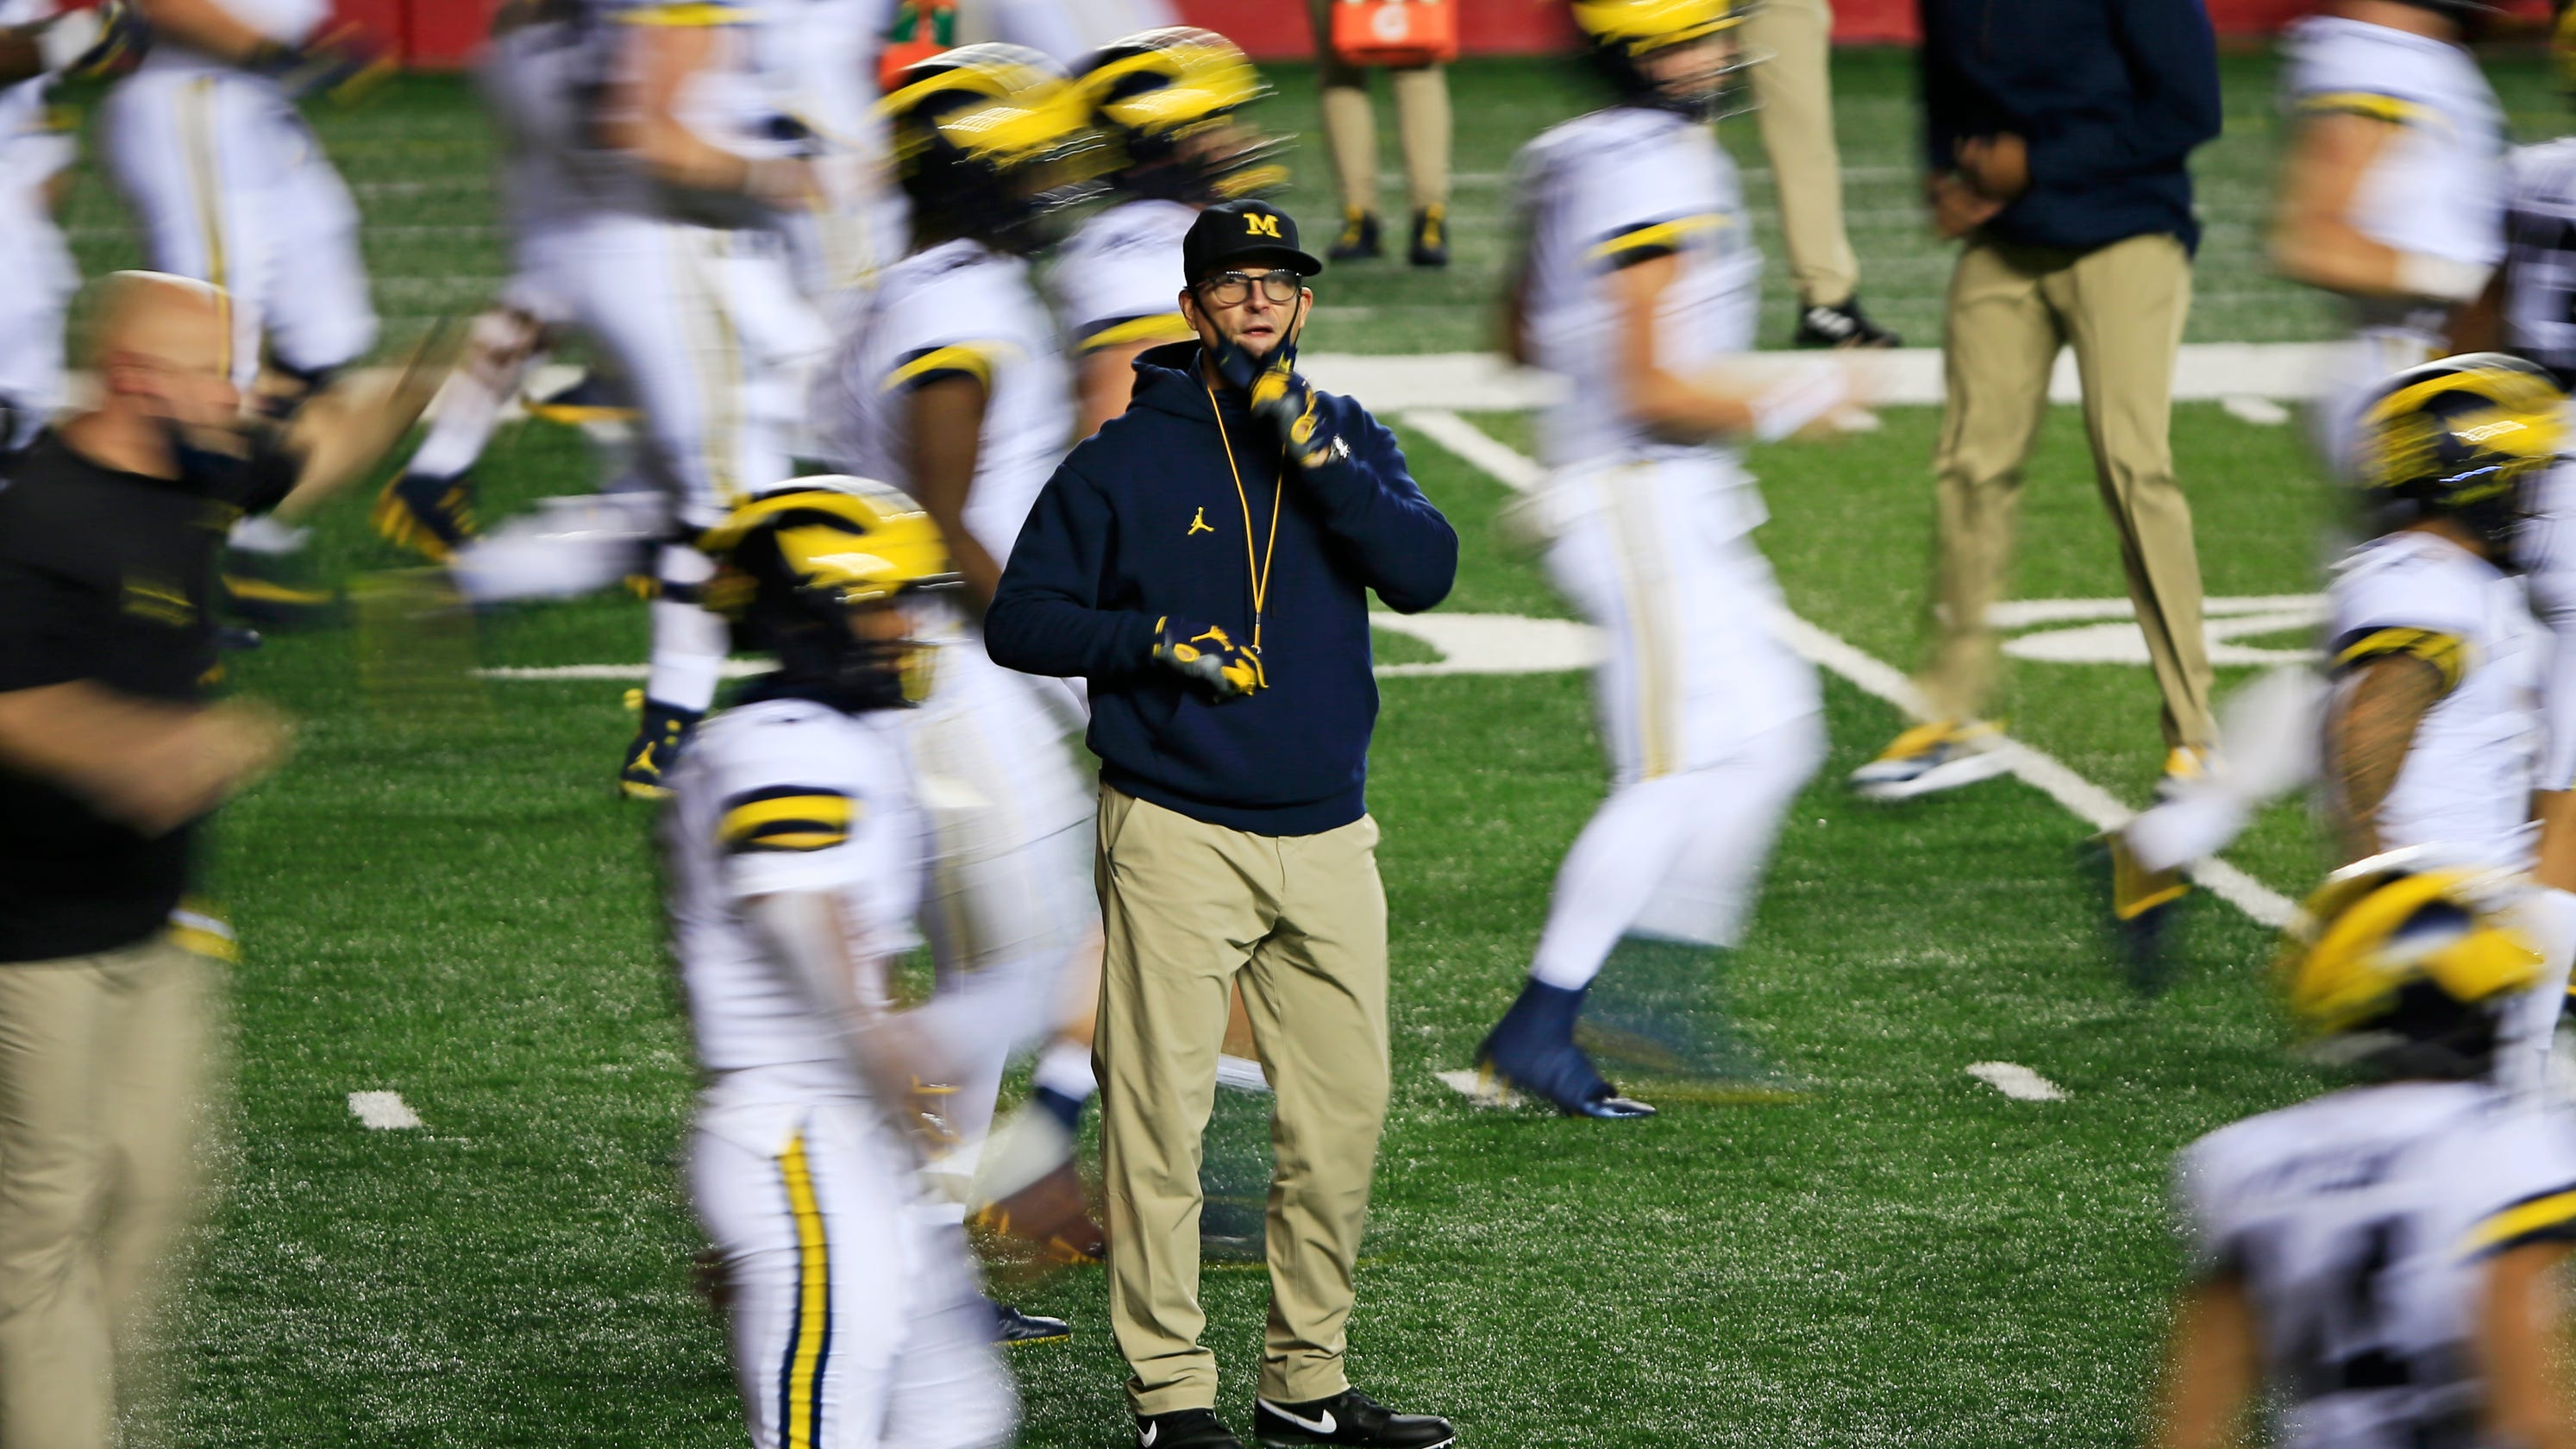 Michigan football trails Rutgers by 2 scores at halftime: How did it get this bad?